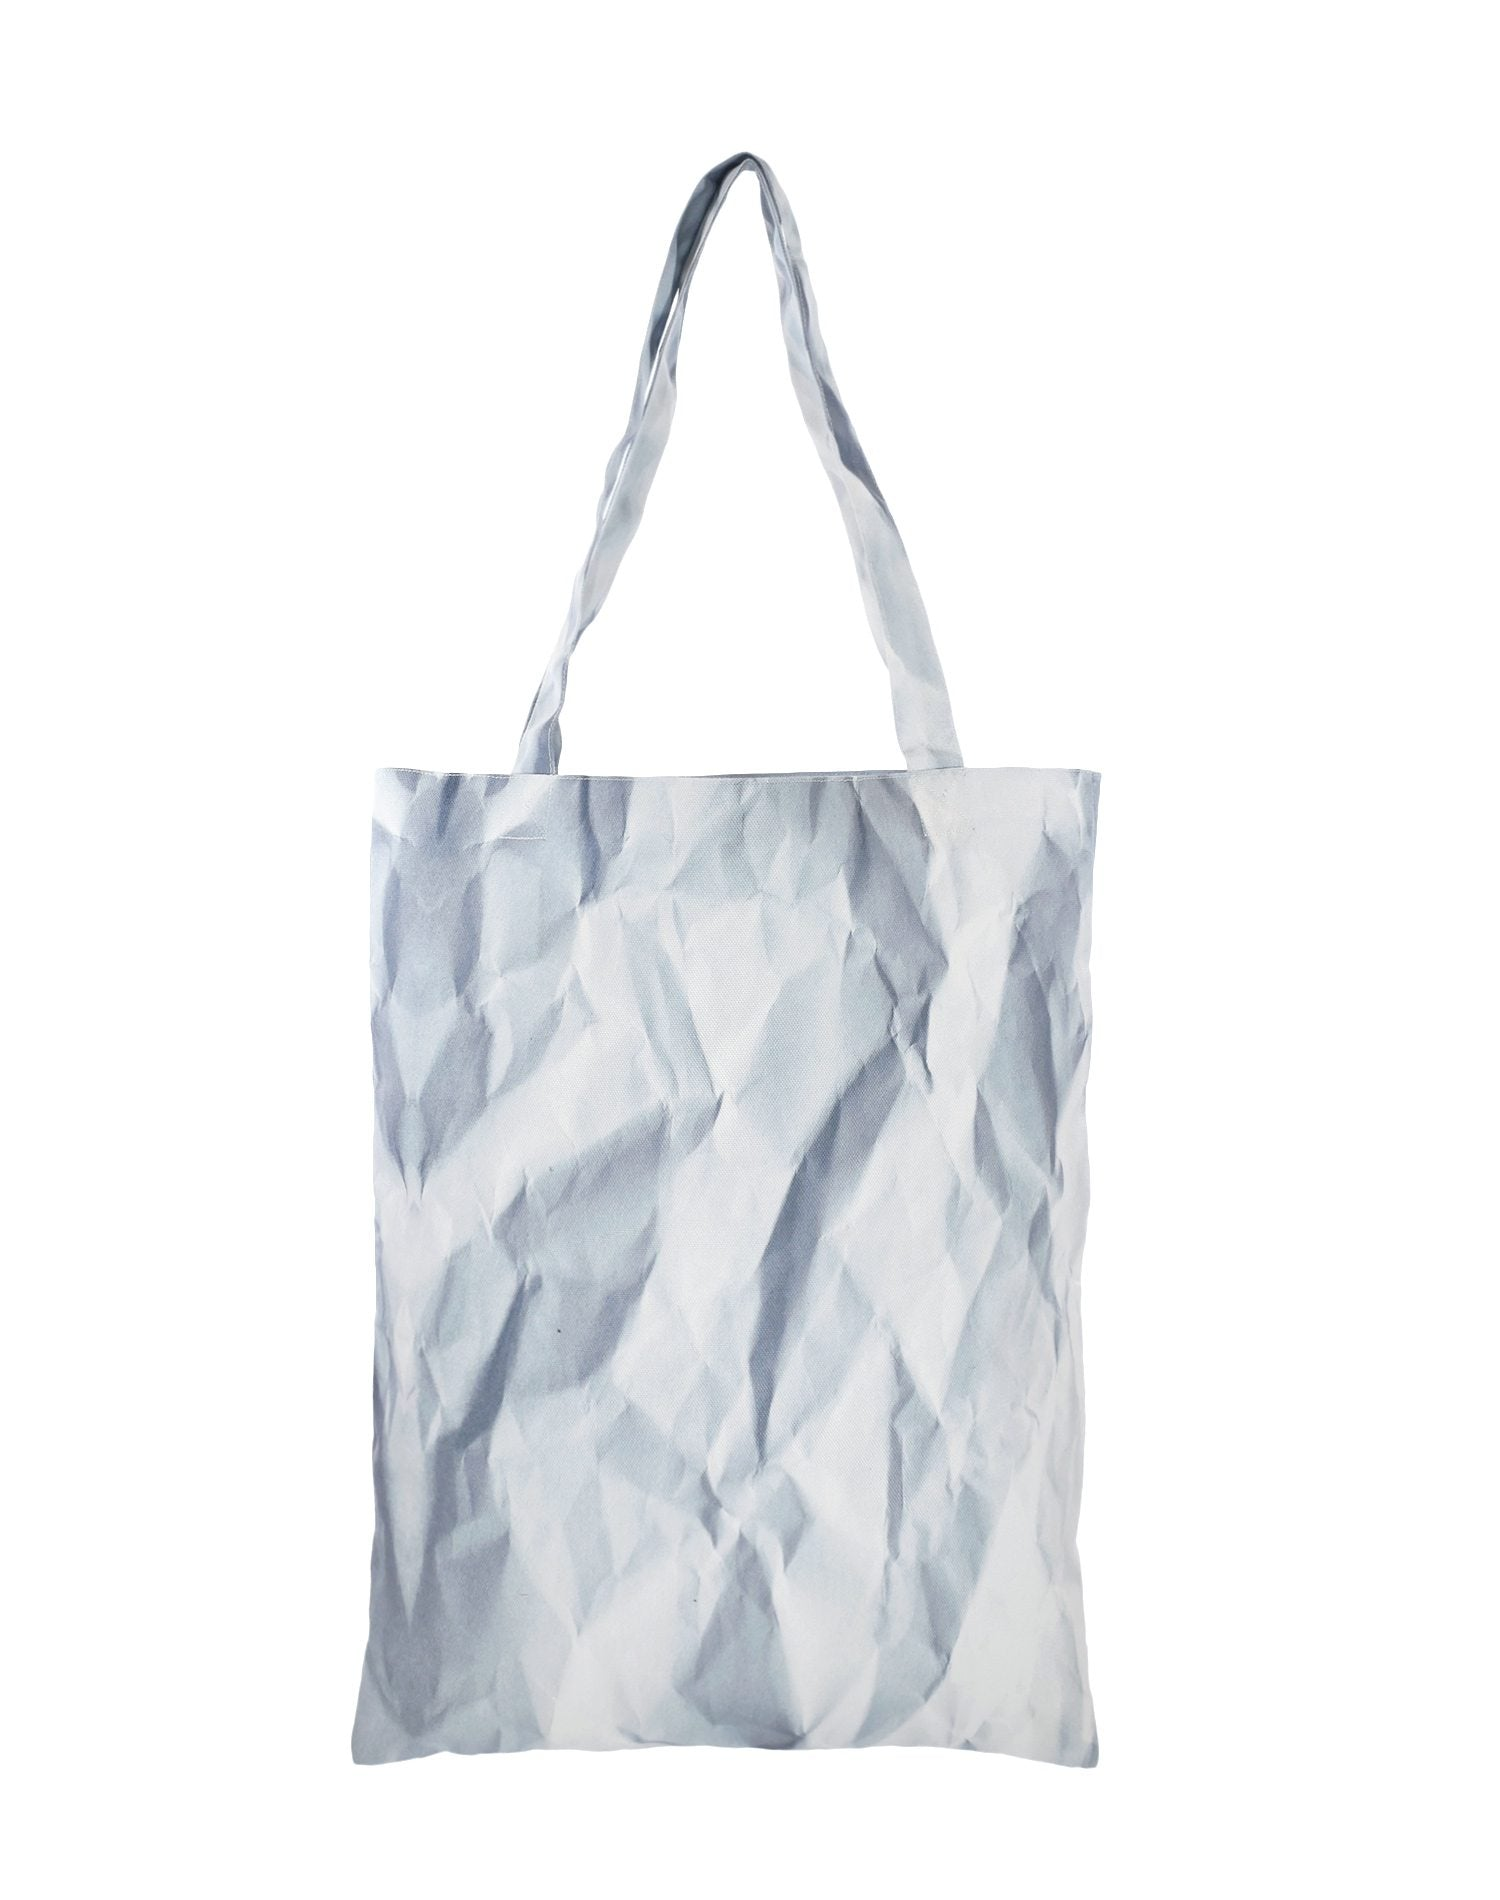 Crumpled Paper Canvas Tote Bag.皺紙帆布側背袋